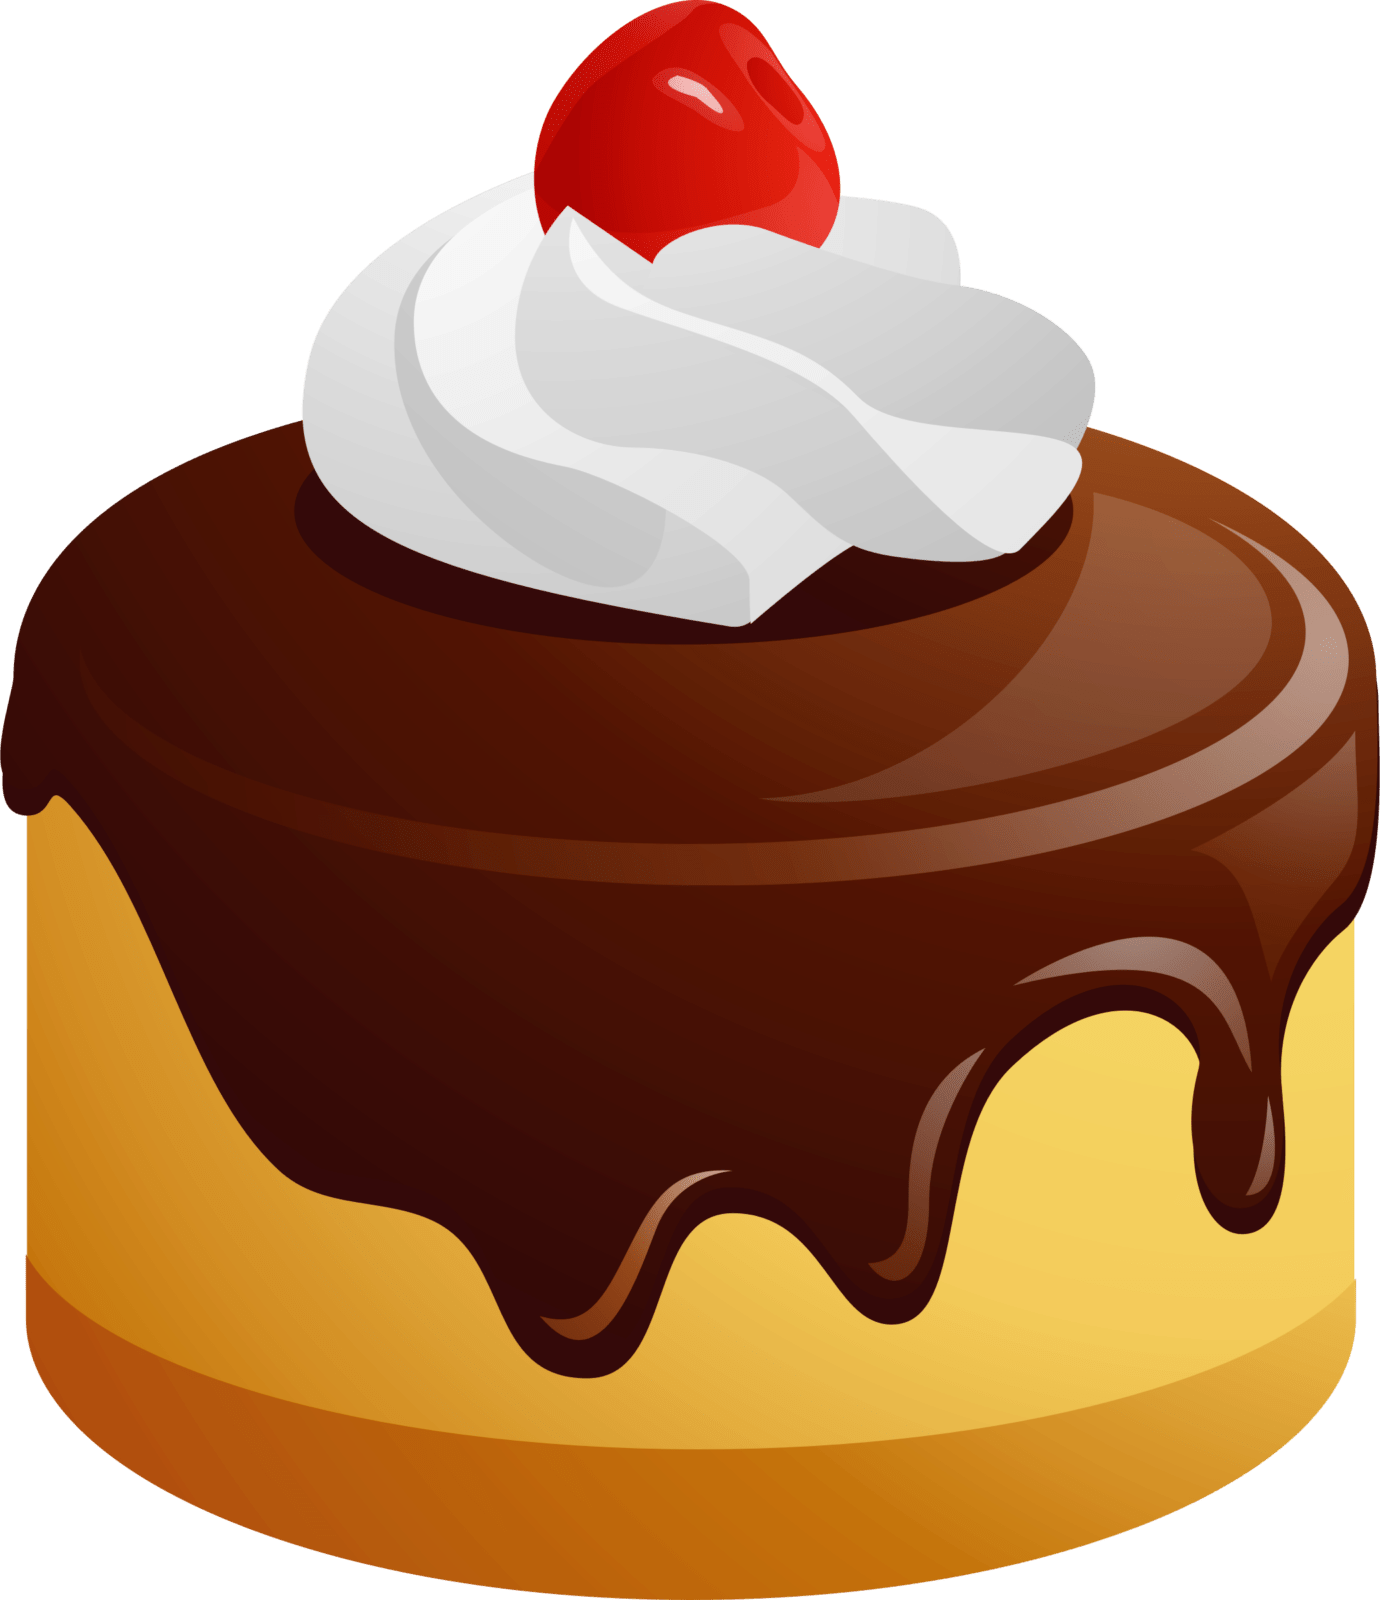 Your guide to the. Desserts clipart baked goods